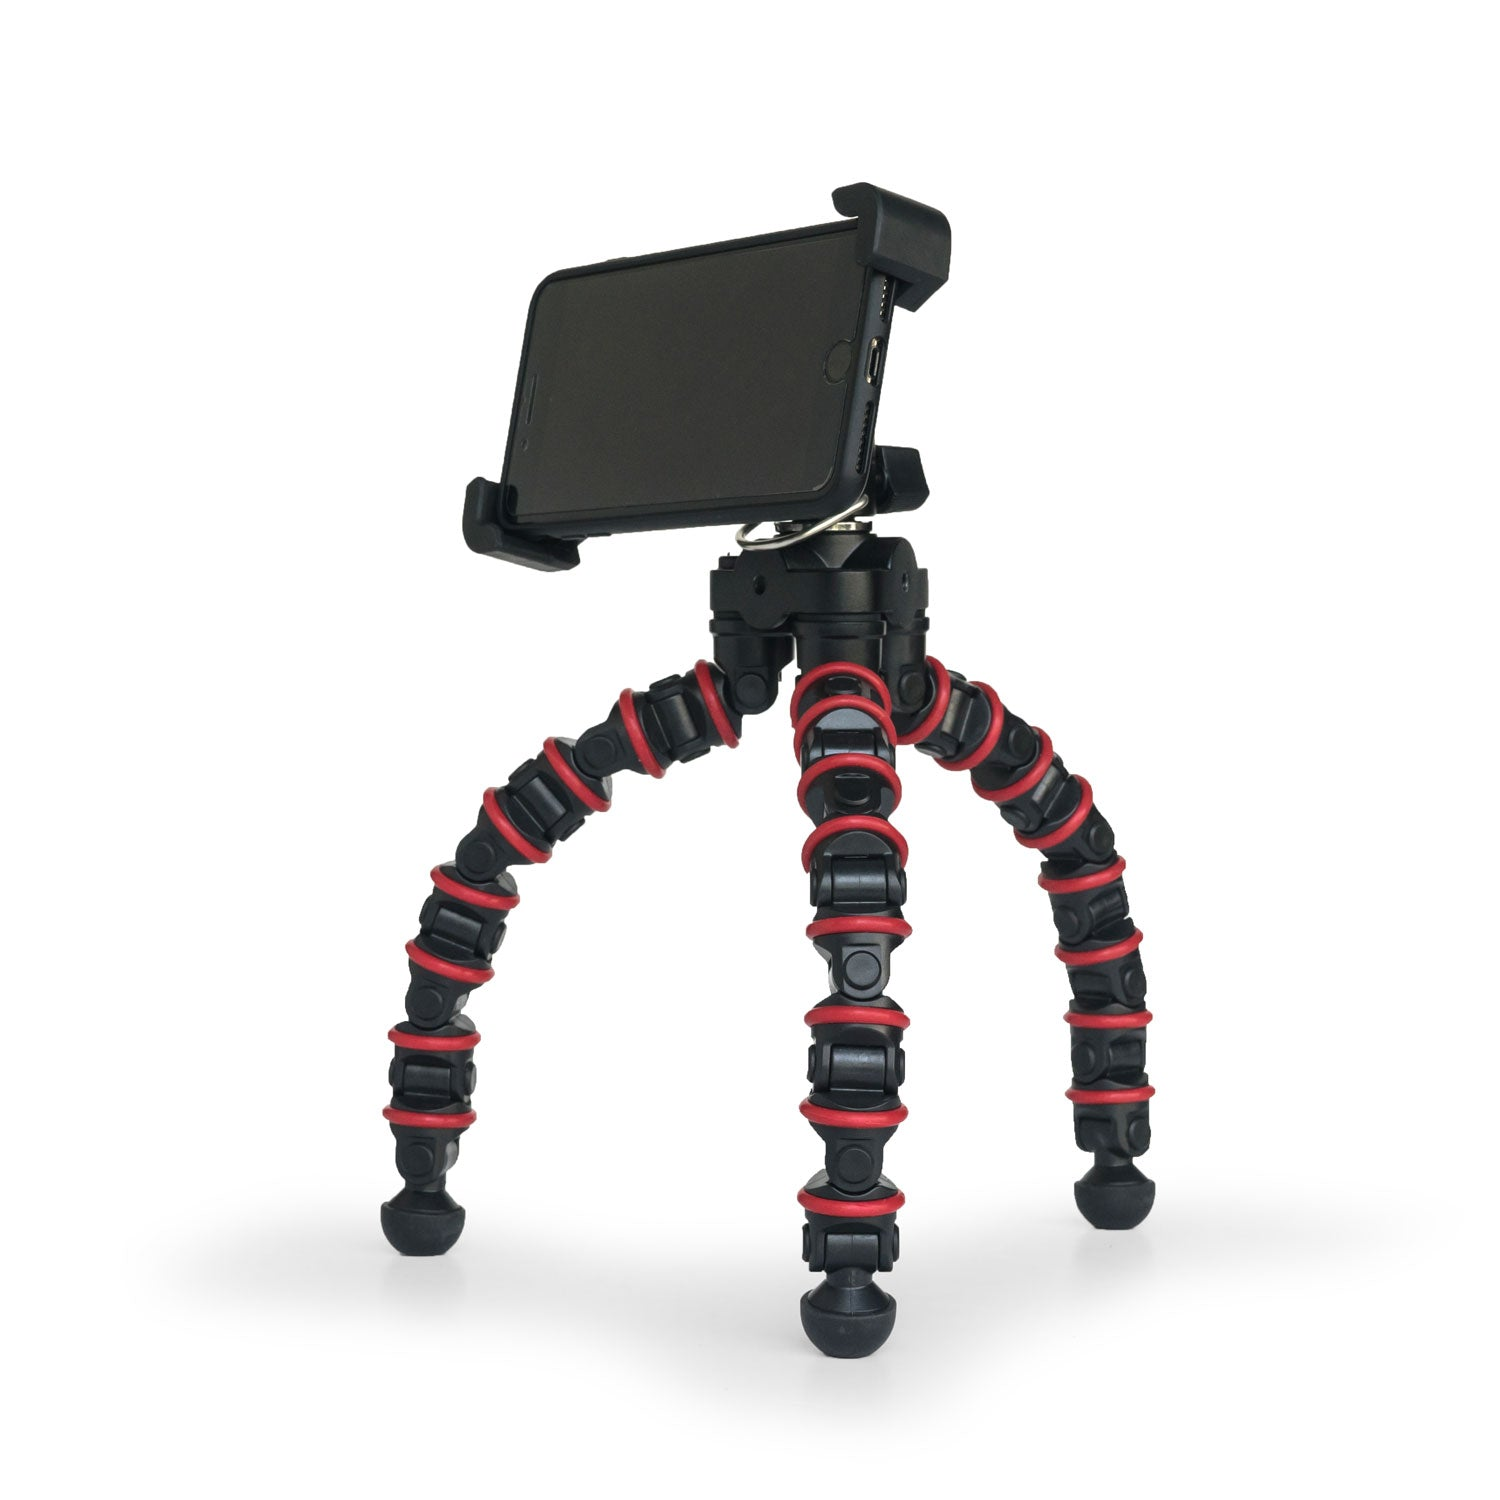 Grifiti Nootle ReCon 9 + Universal Phone Mount - Grifiti